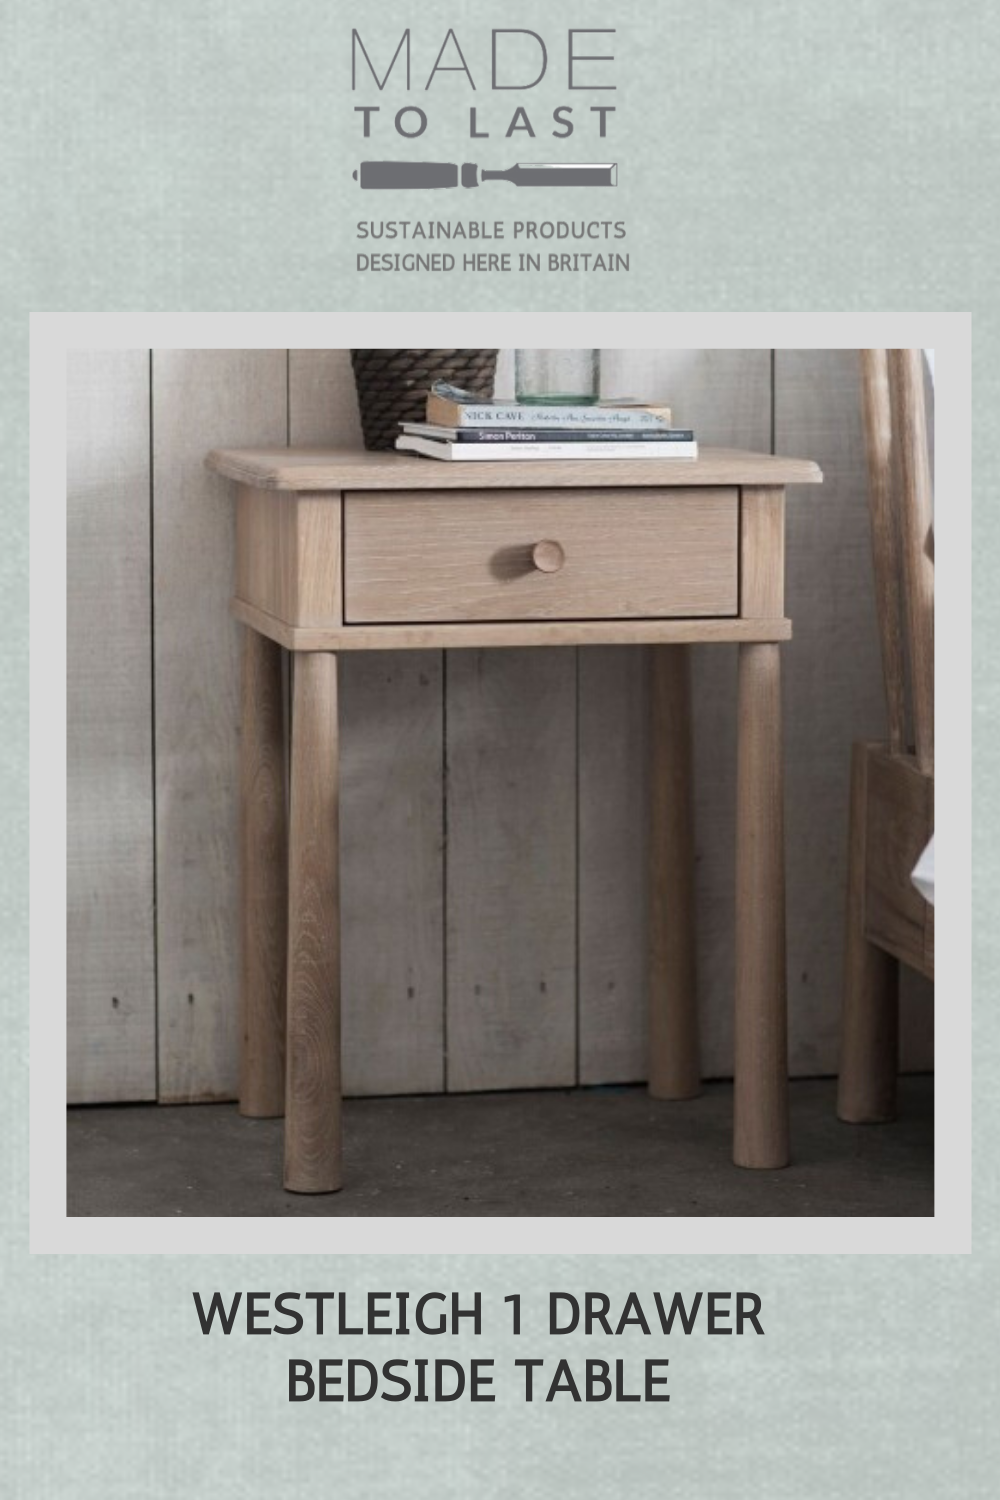 Westleigh 1 Drawer Bedside Table In 2020 Oak Bedside Tables Wooden Bedside Cabinets Bedside Table #side #table #for #living #room #with #drawers